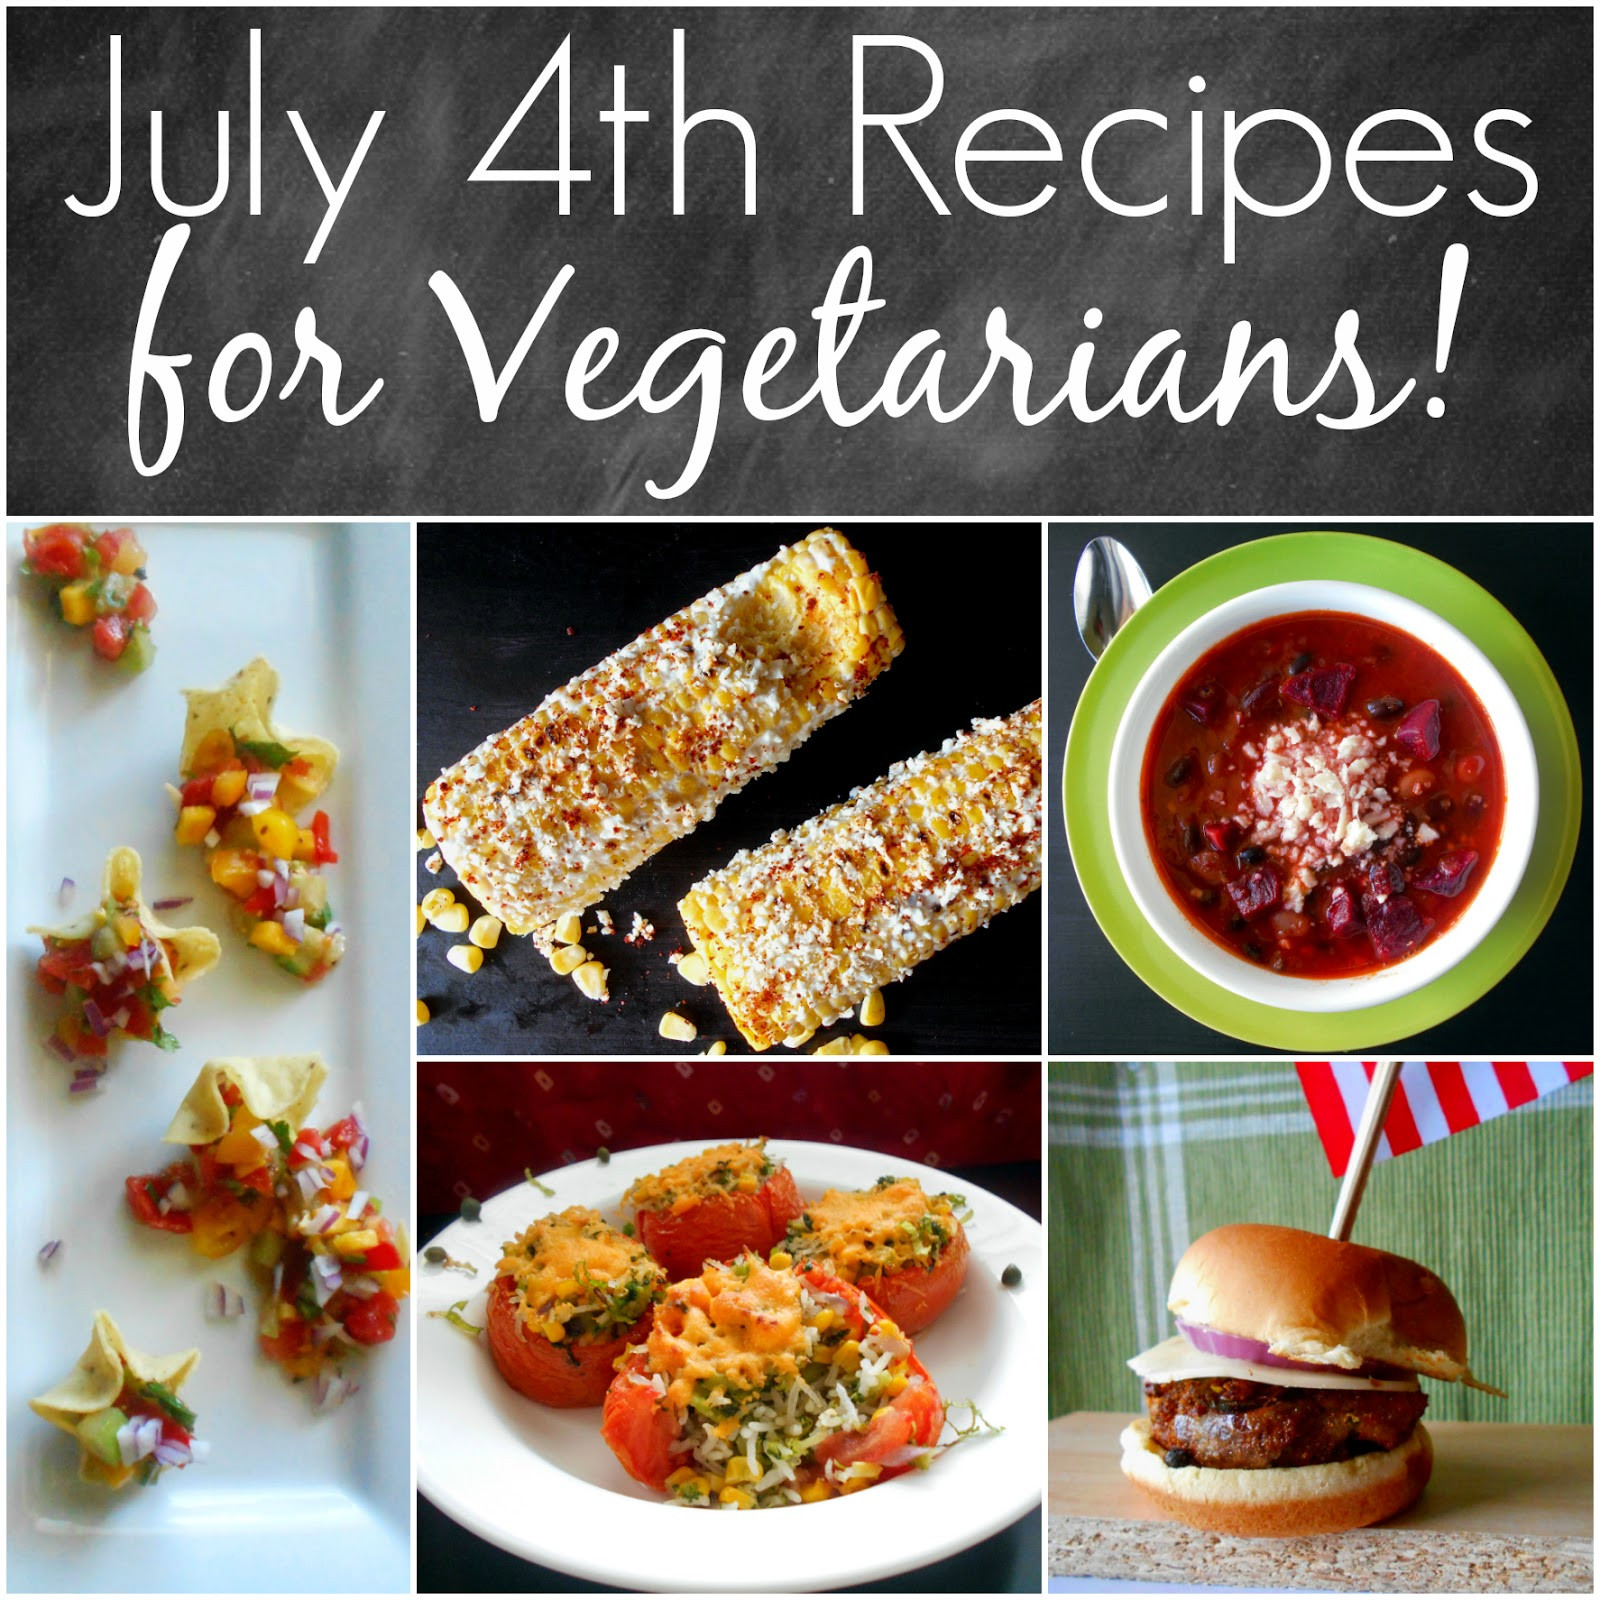 Vegetarian 4Th Of July Recipes  5 Ve arian Dishes for July 4th from Rini Diane s